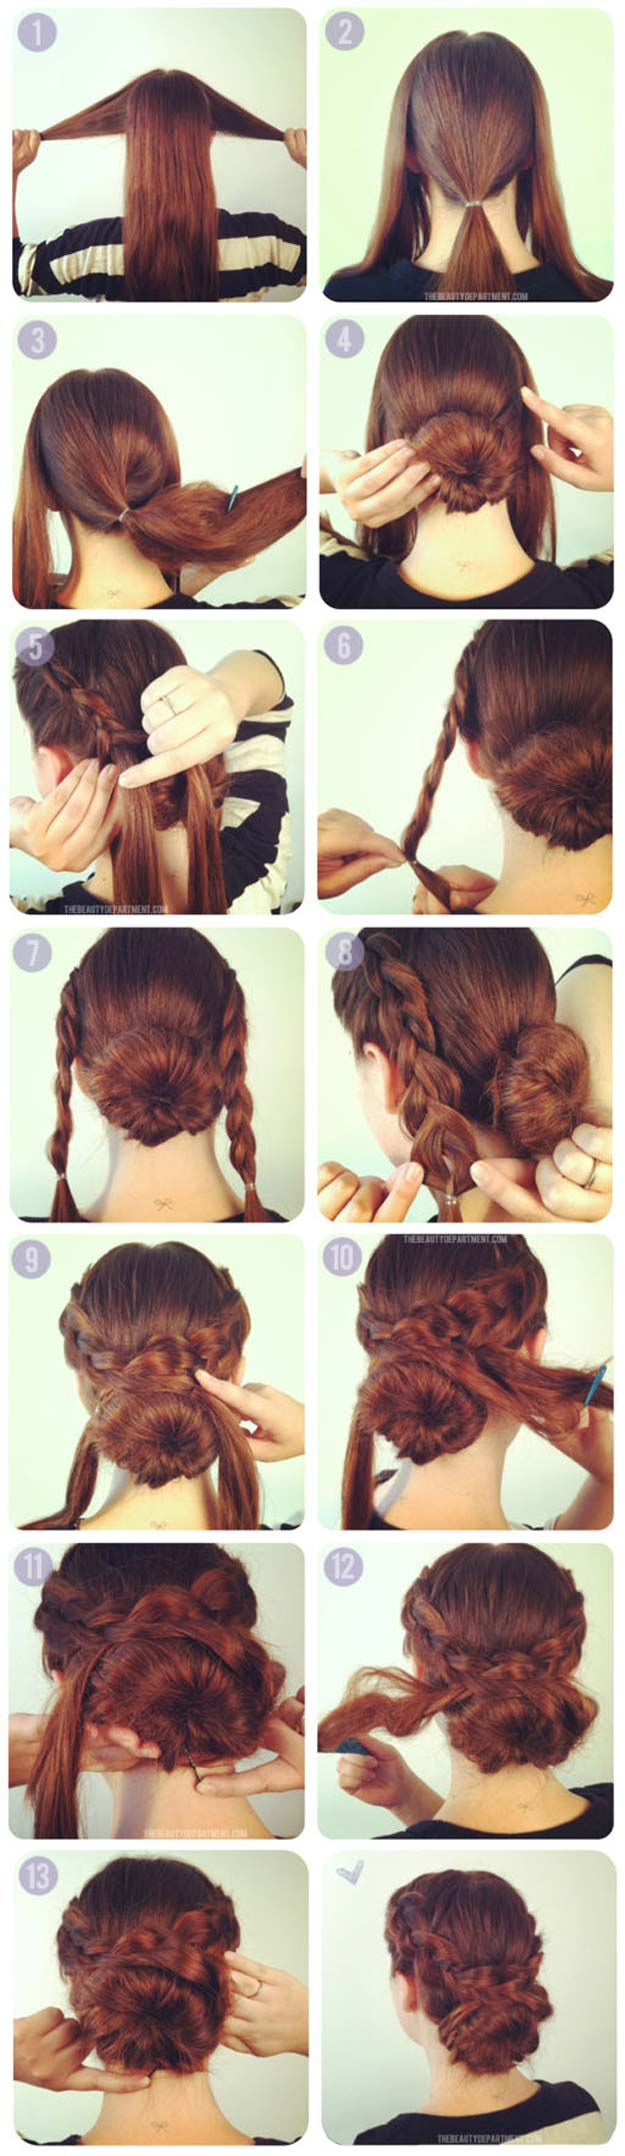 Cool 36 Best Hairstyles For Long Hair Diy Projects For Teens Short Hairstyles For Black Women Fulllsitofus